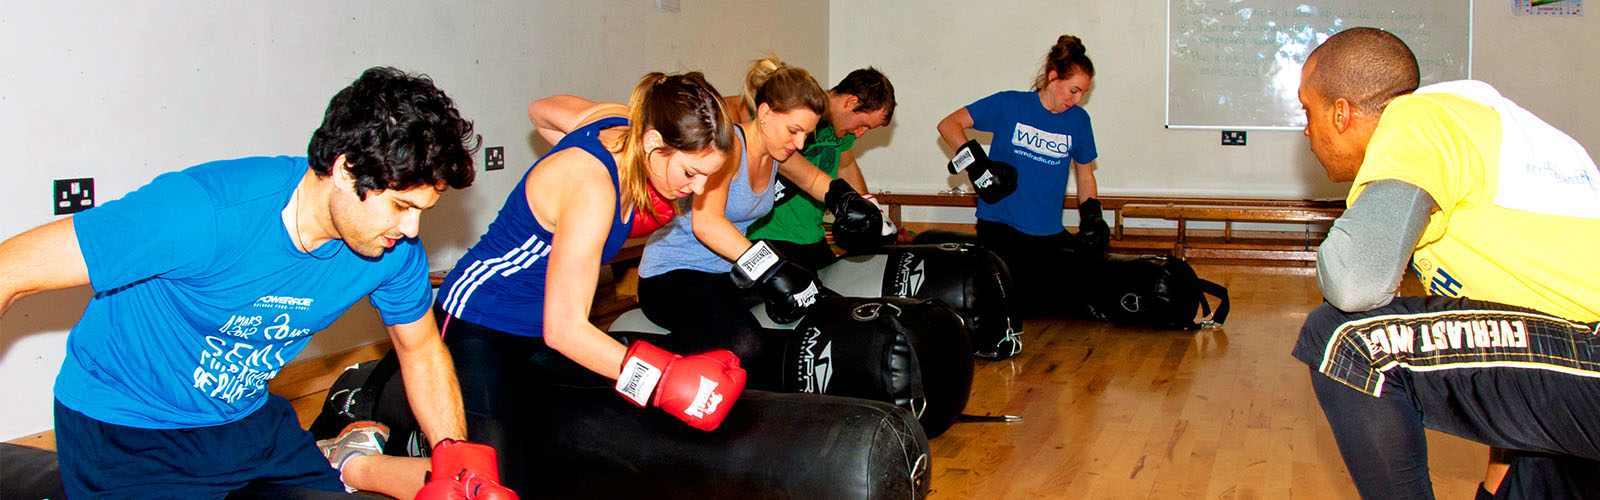 _0072_GOMammoth-Boxfit-London